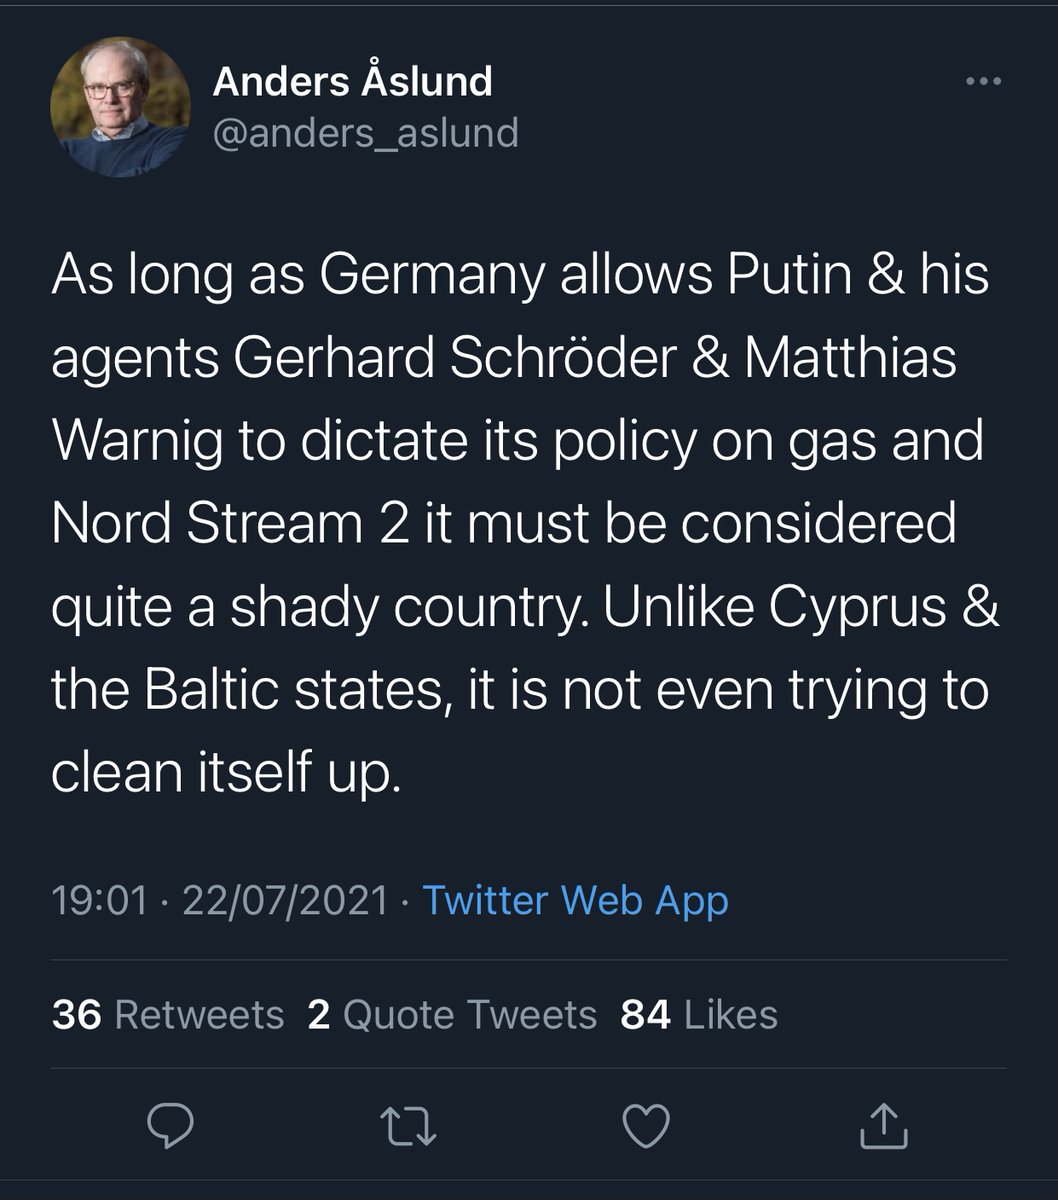 What @anders_aslund neglects to mention that there is a way for Germany to purge itself of its shadiness & come back into the fold.   By making a large donation to the @AtlanticCouncil. Just like the, not-at-all shady, Ukrainian oligarchs & Gulf despots that fund it now. https://t.co/kjgUbwUnva